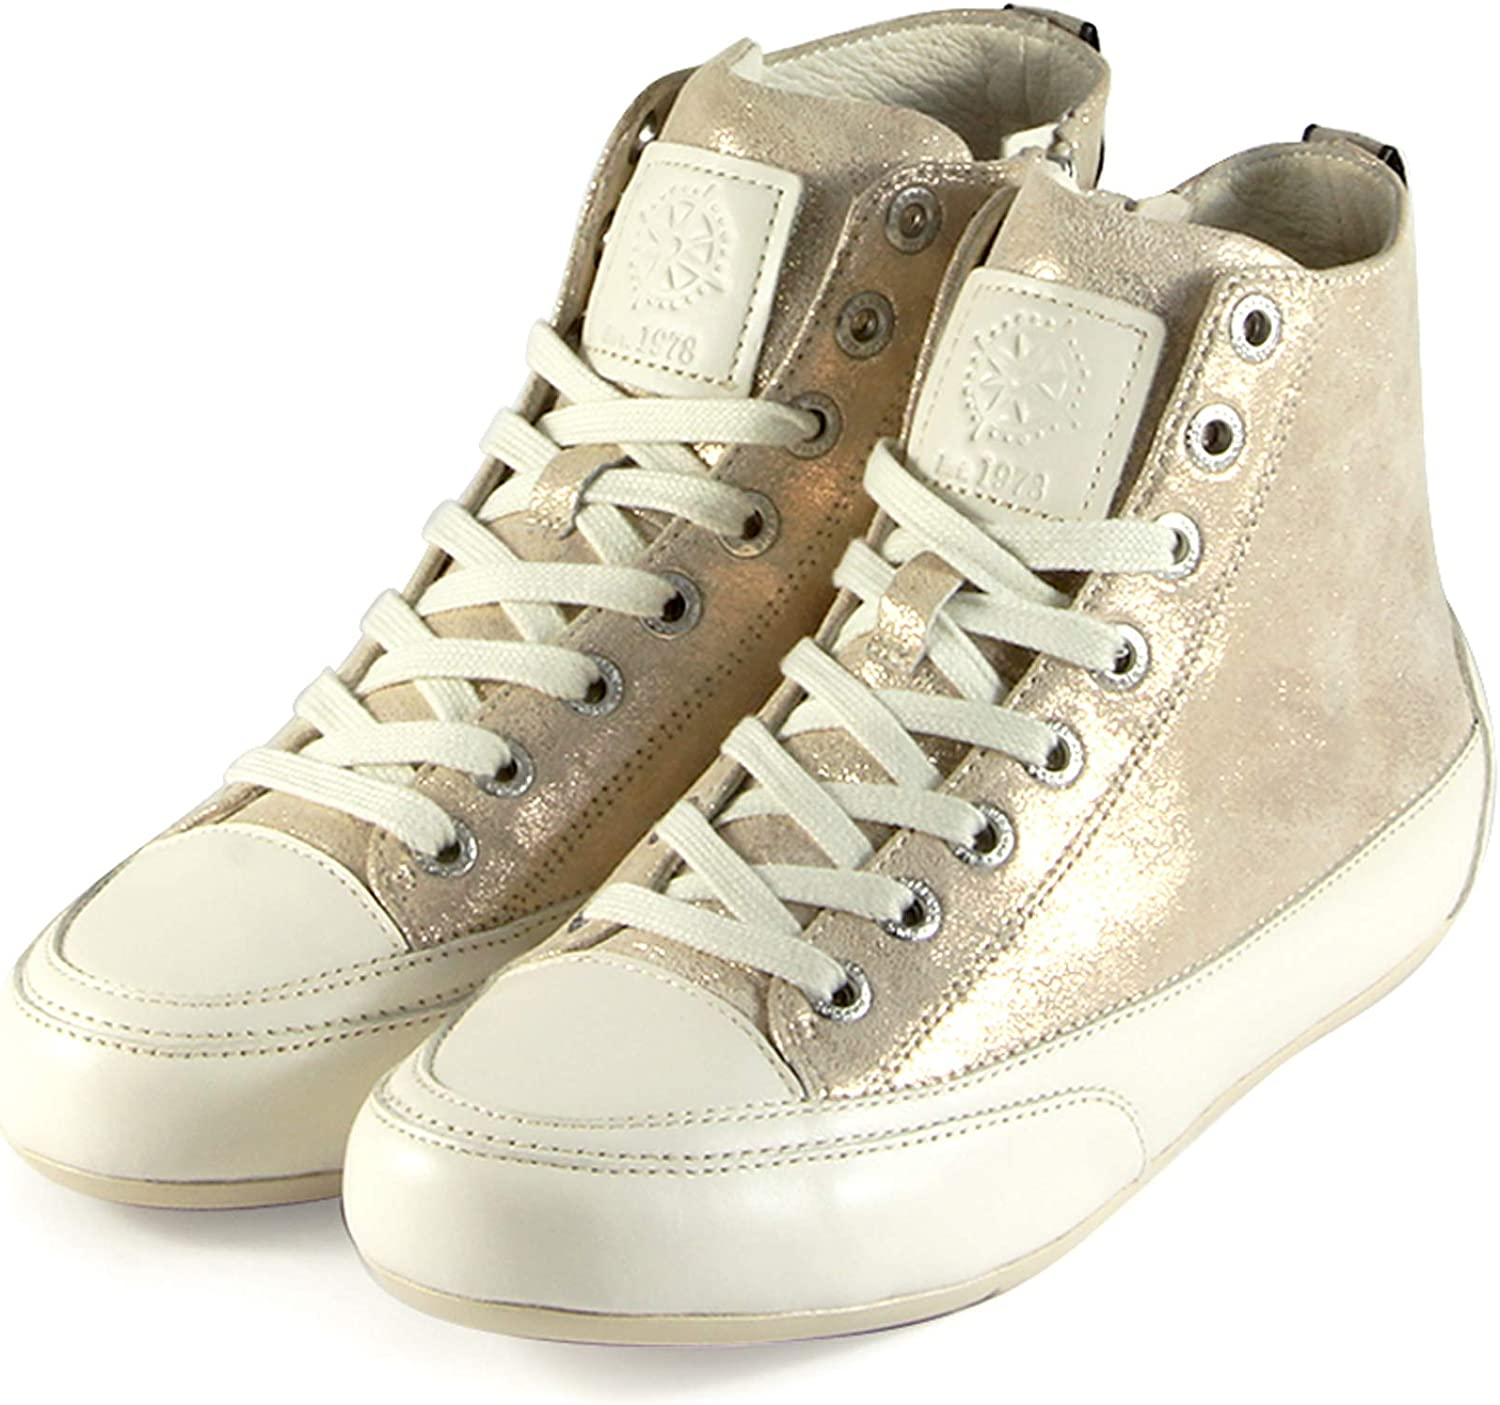 Bussola Sneakers for Women Lace-up Sneakers Leather Fashion Sneakers Novara Hight top Comfortable Walking Casual Shoes